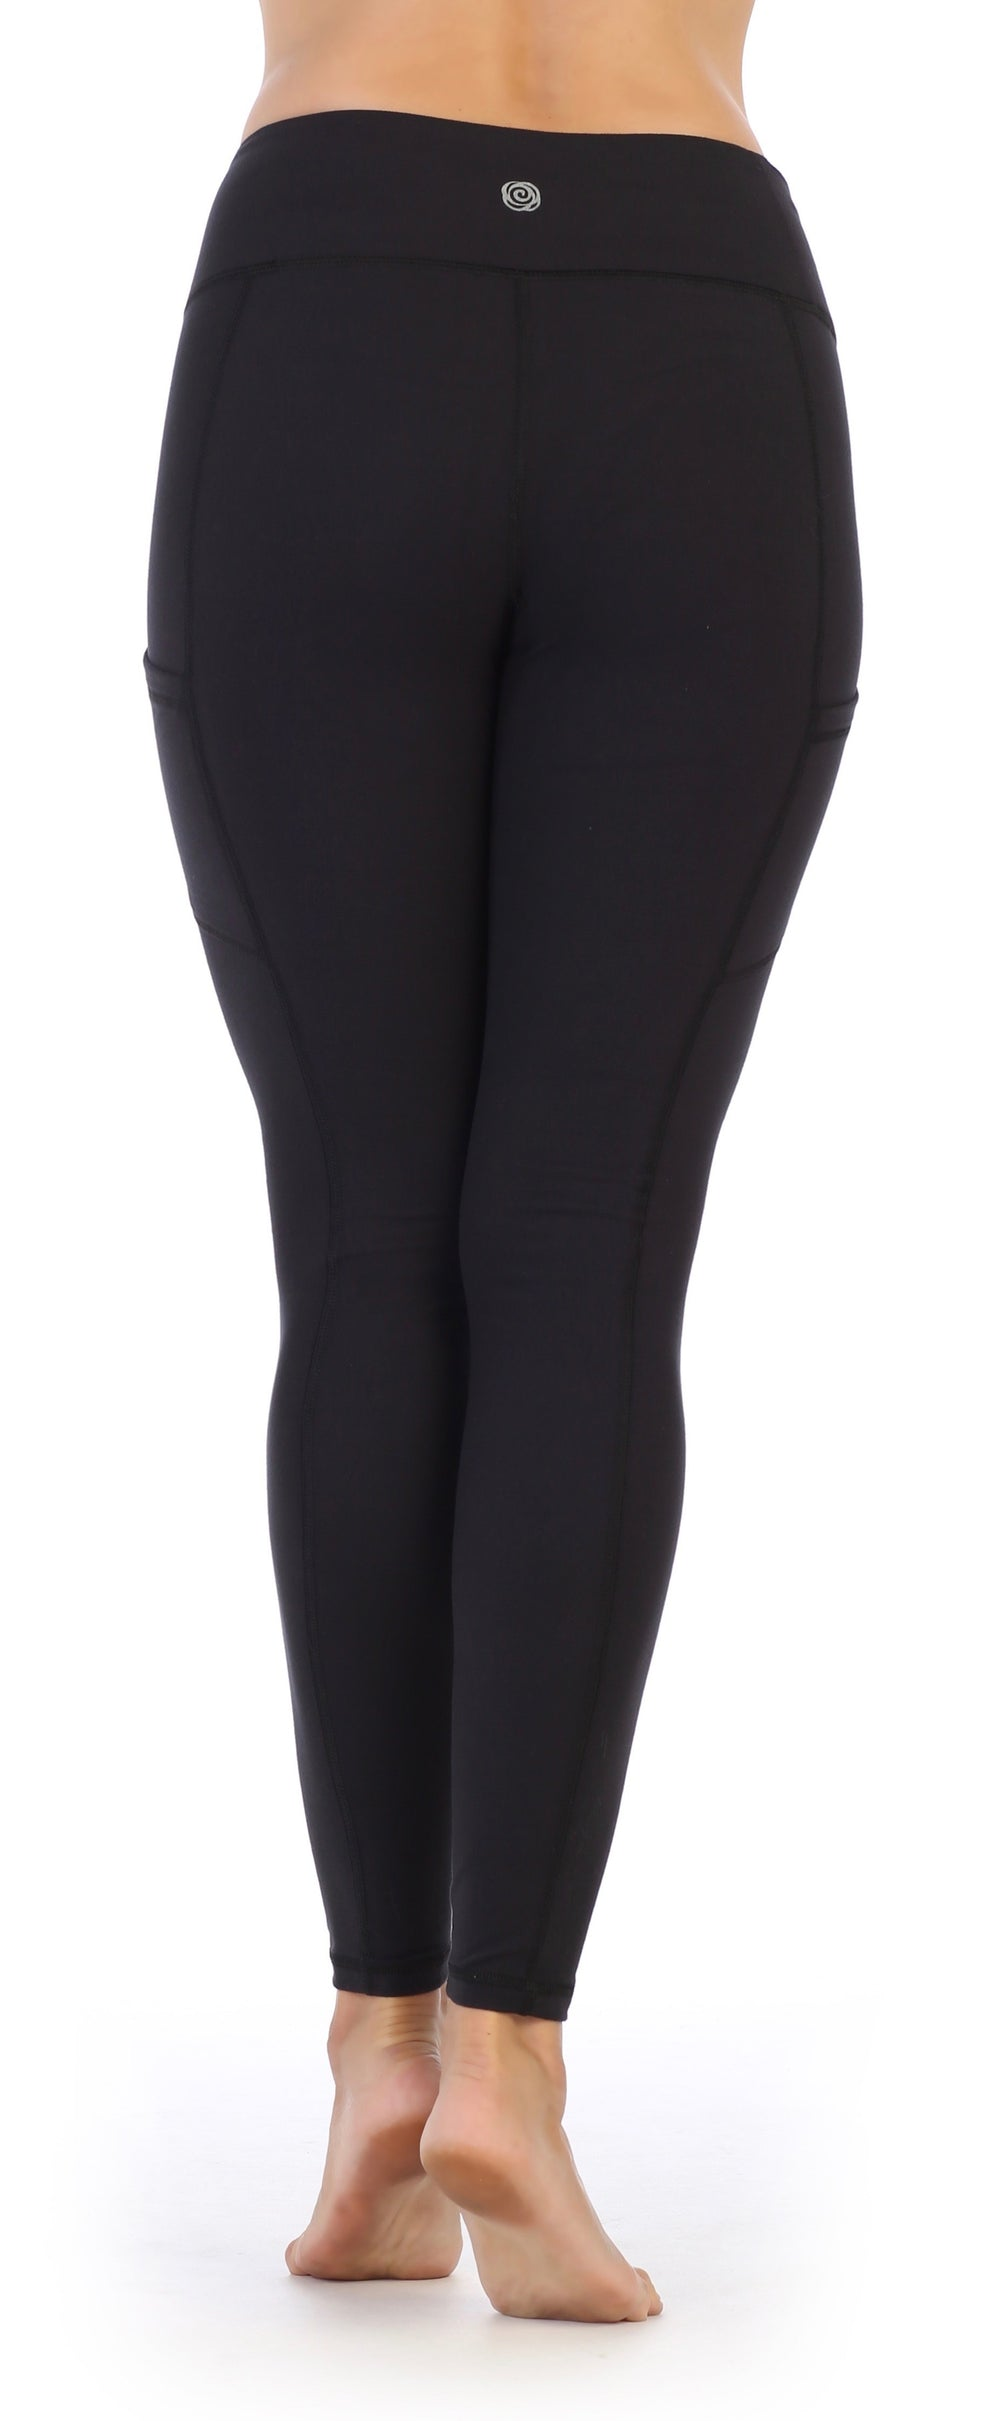 Black--High Waist-Pocket Compression Full Length Leggings-back image